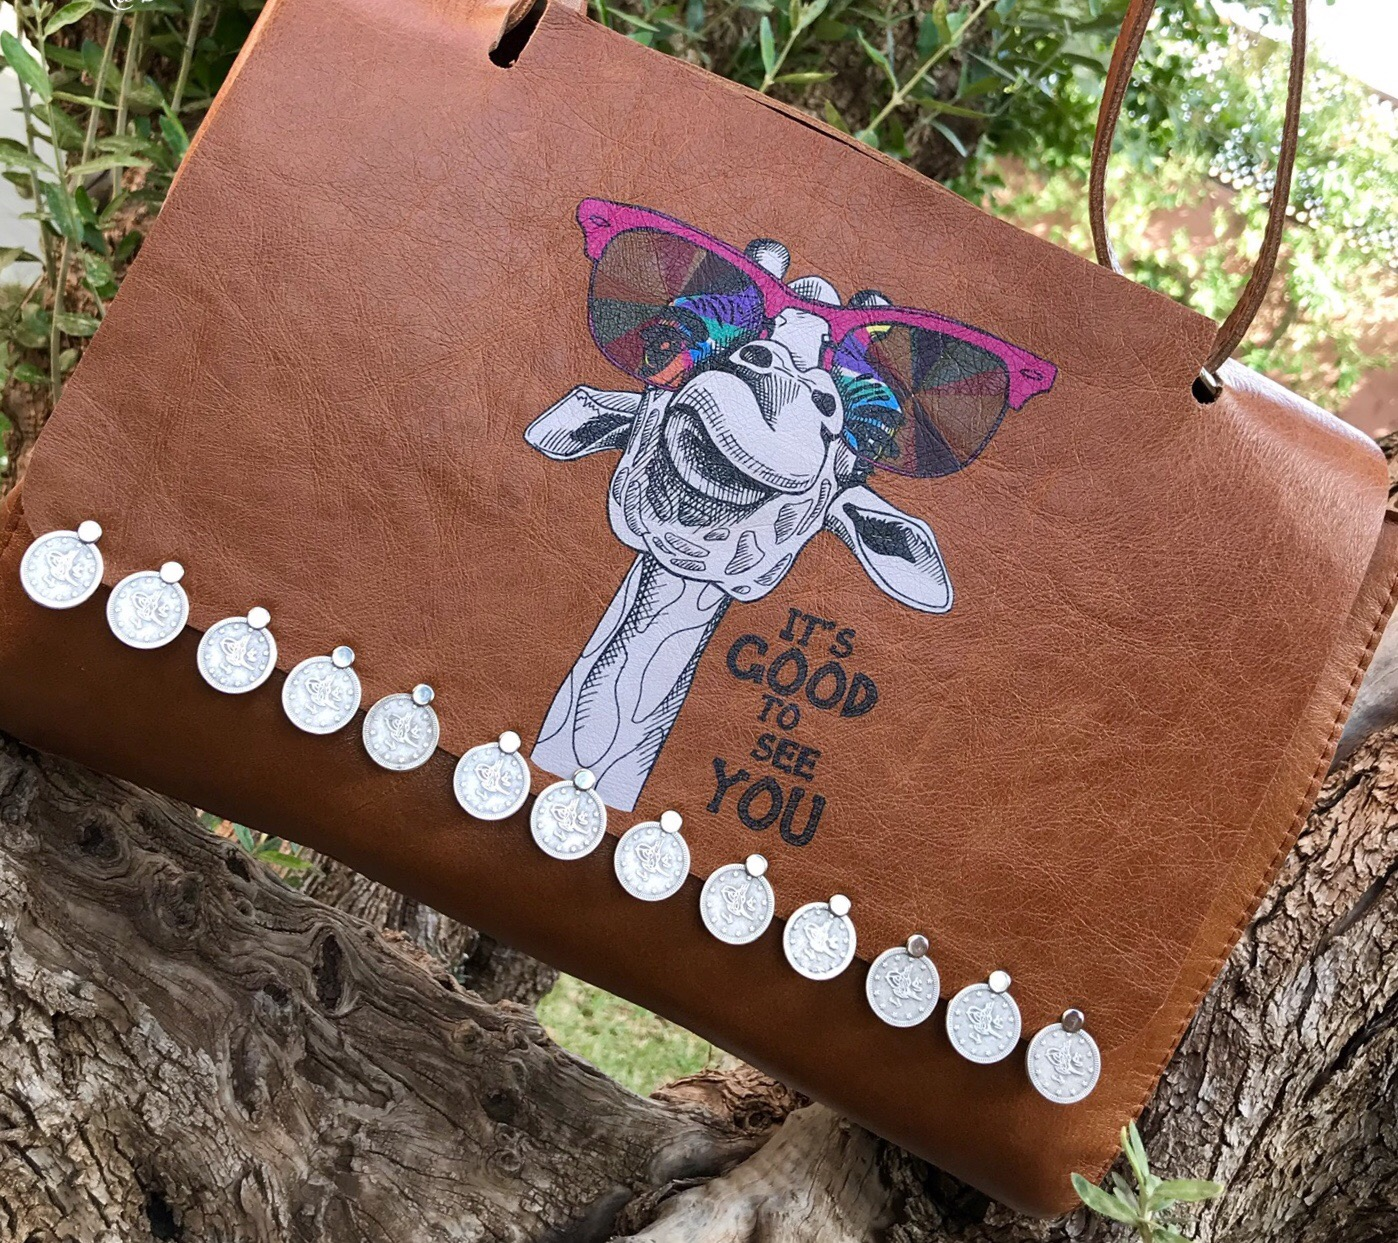 Bag leather handmade big with funky camel & money